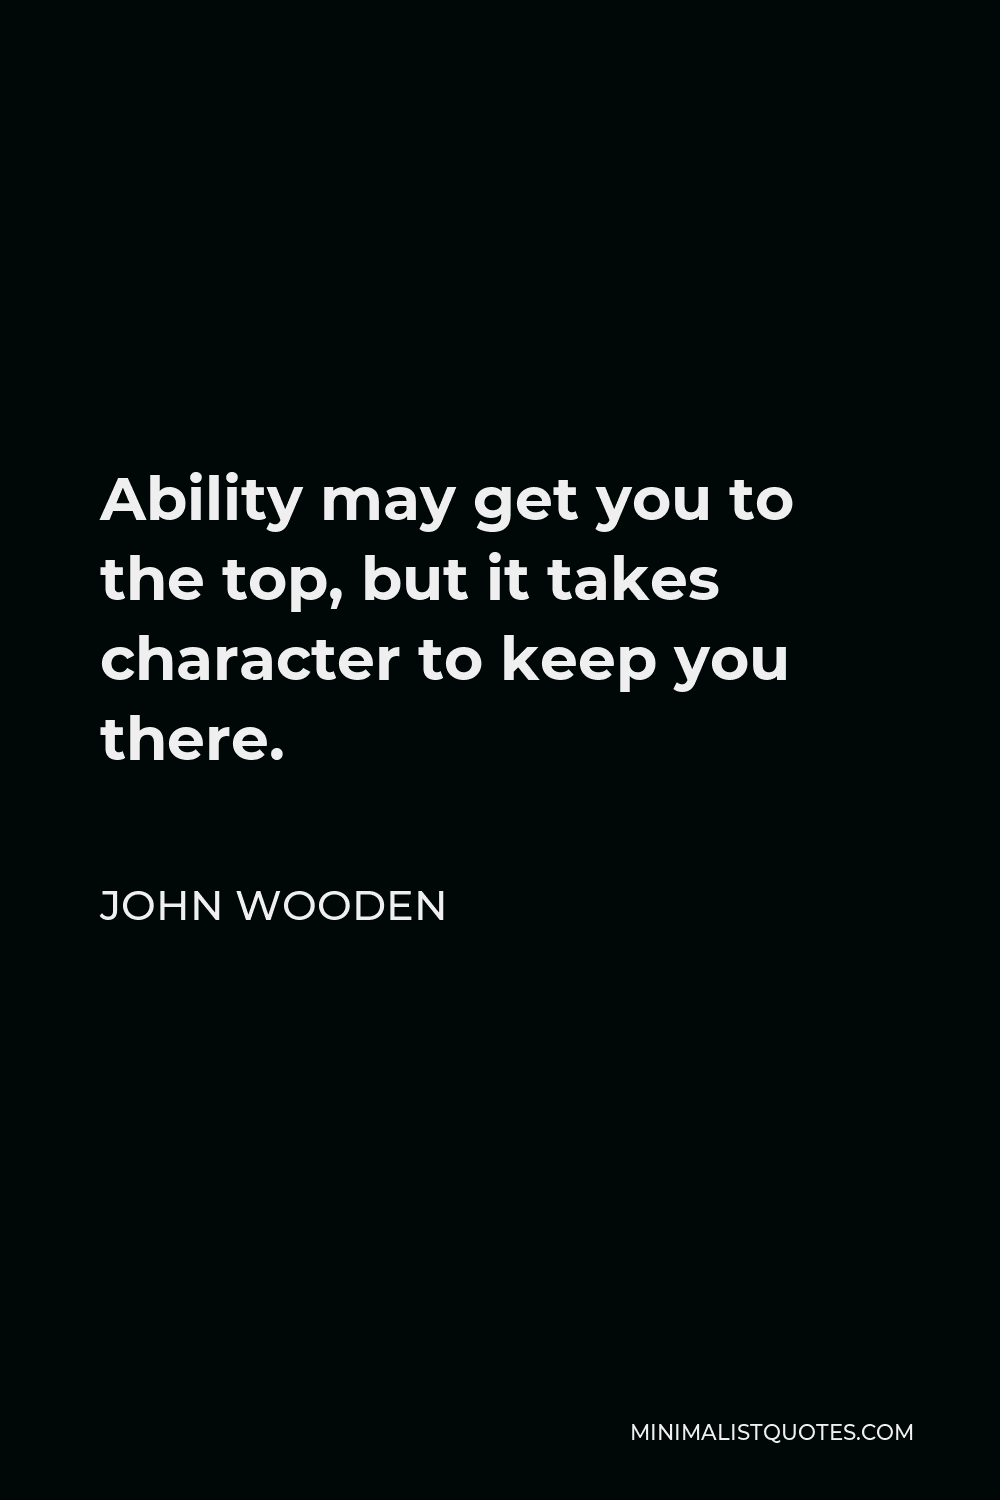 Stevie Wonder Quote - Ability may get you to the top, but it takes character to keep you there.